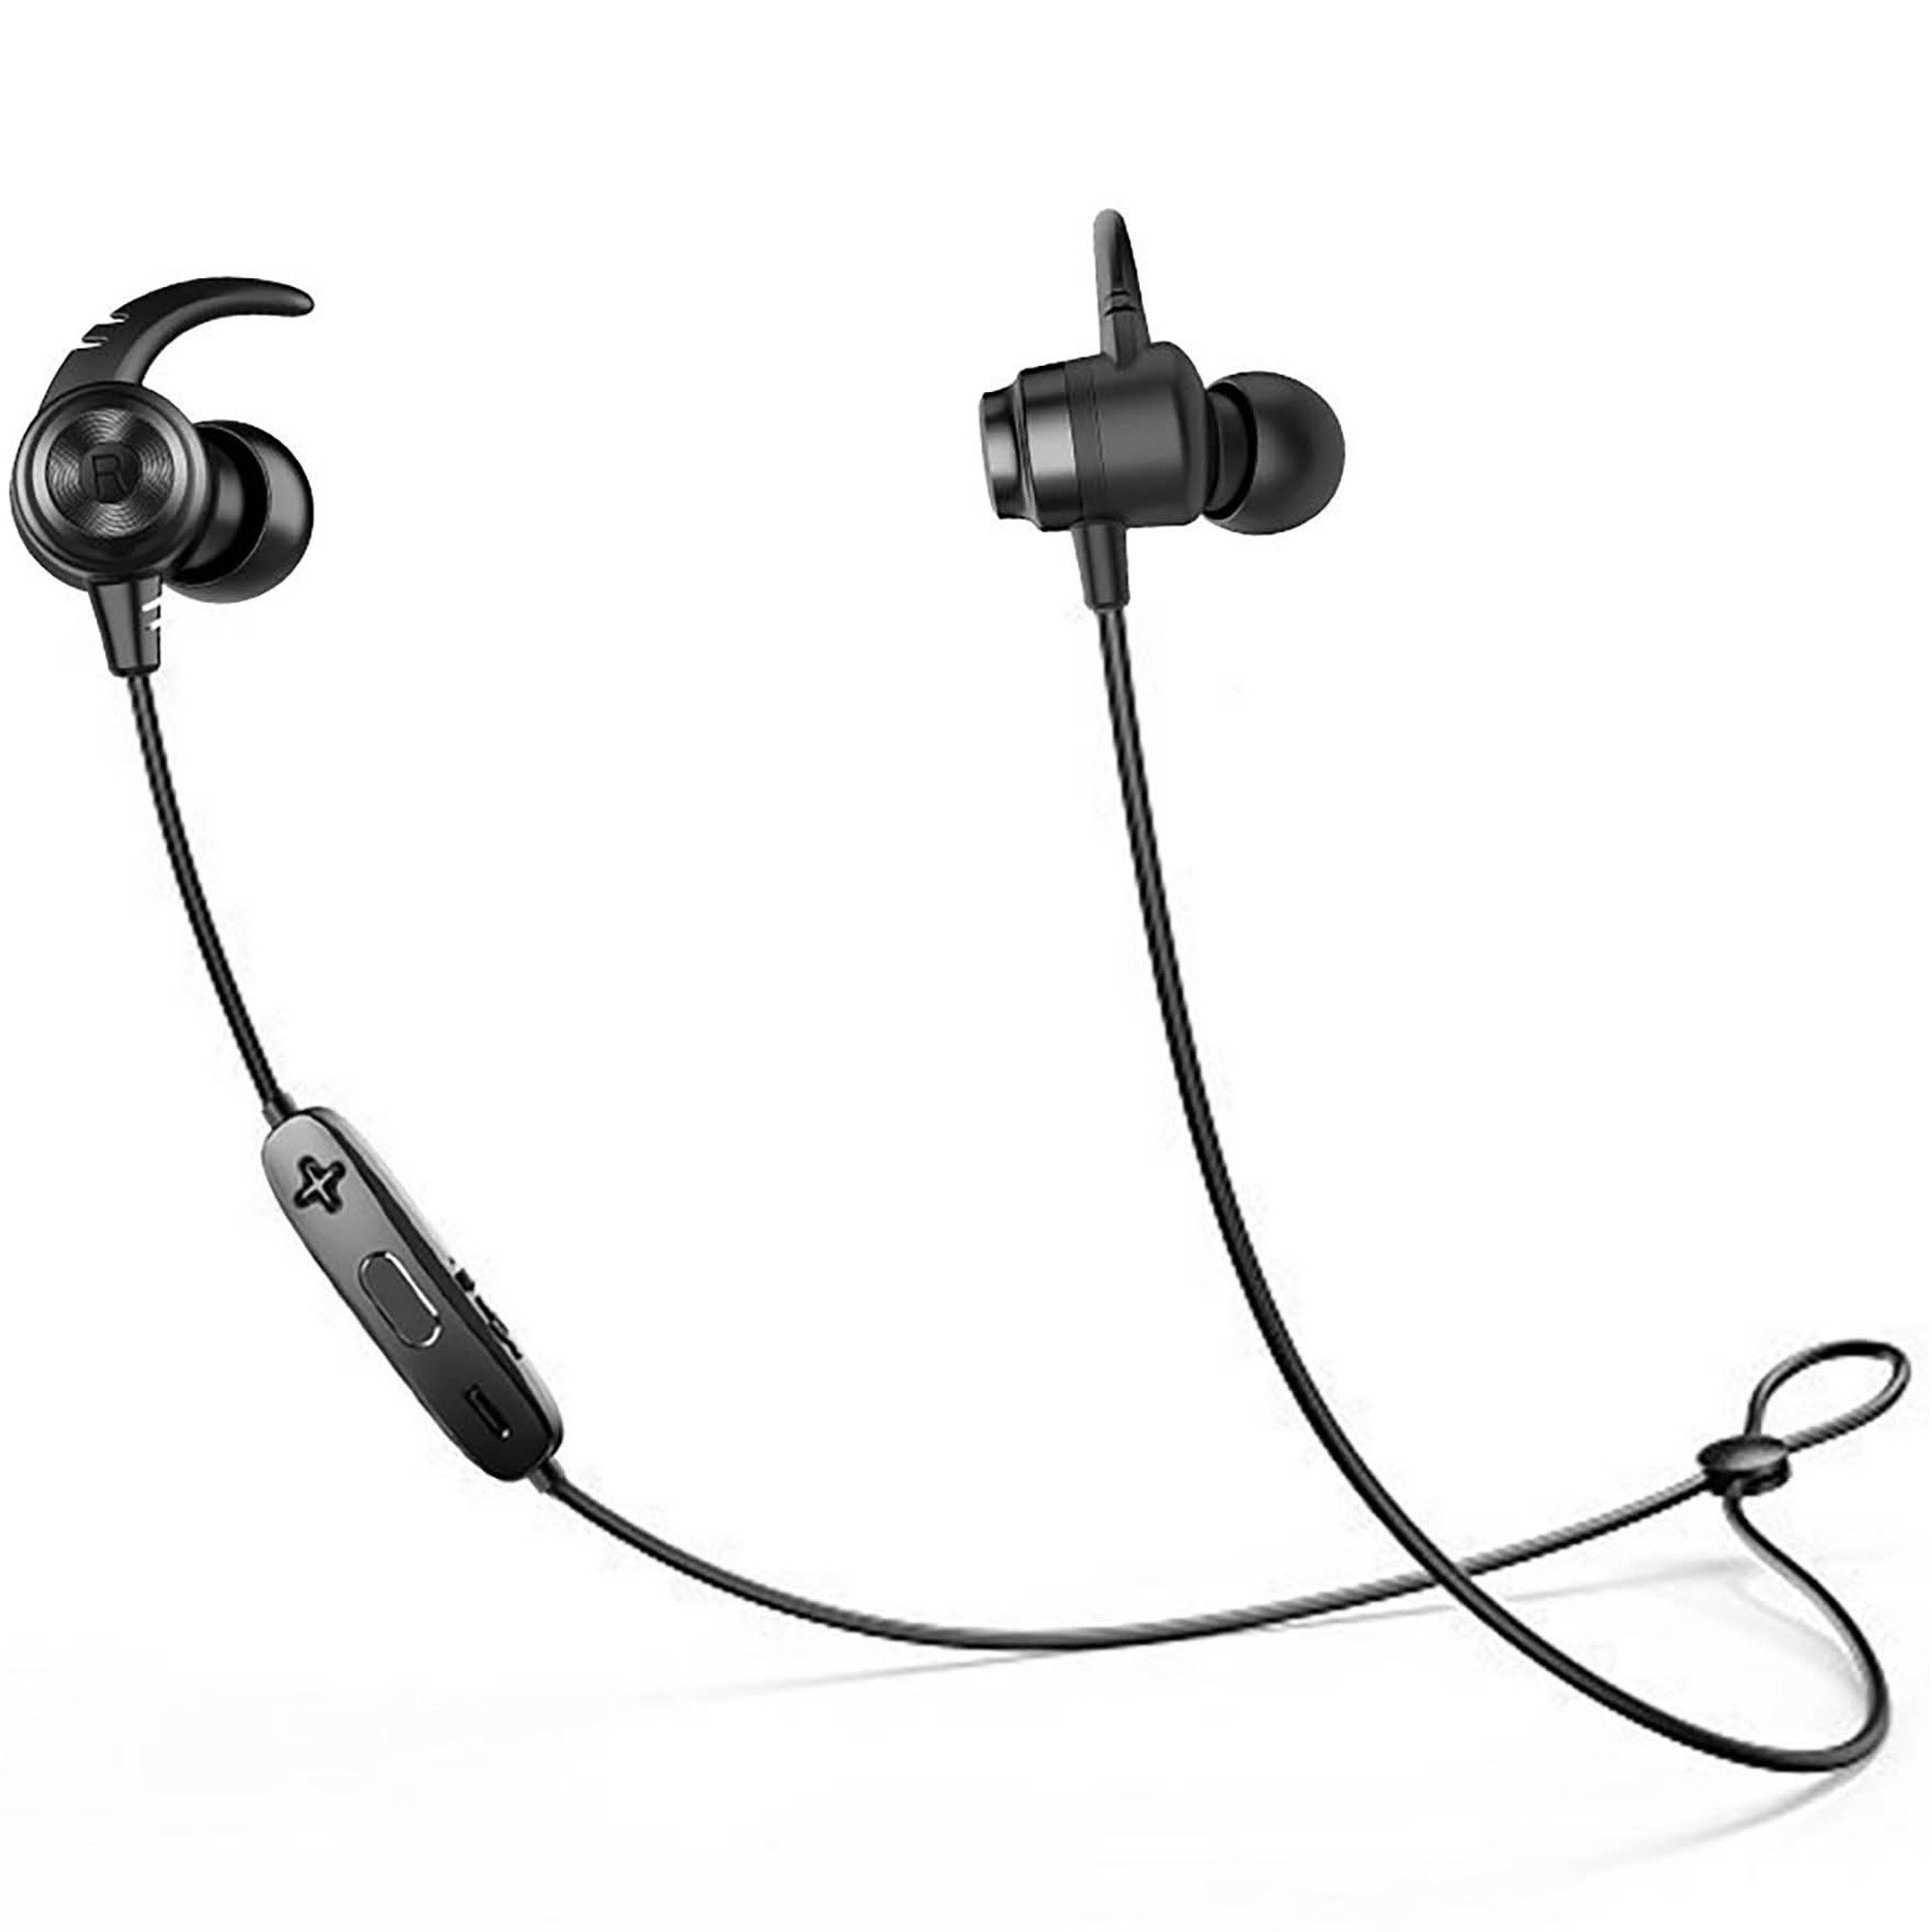 Wireless Headphones Bluetooth Earphone Sport In-Ear HD Stereo Sweatproof Magnetic Headphones with Mic for Running Sport, IPX5, Bluetooth 4.1, Support 2 Devices (black)